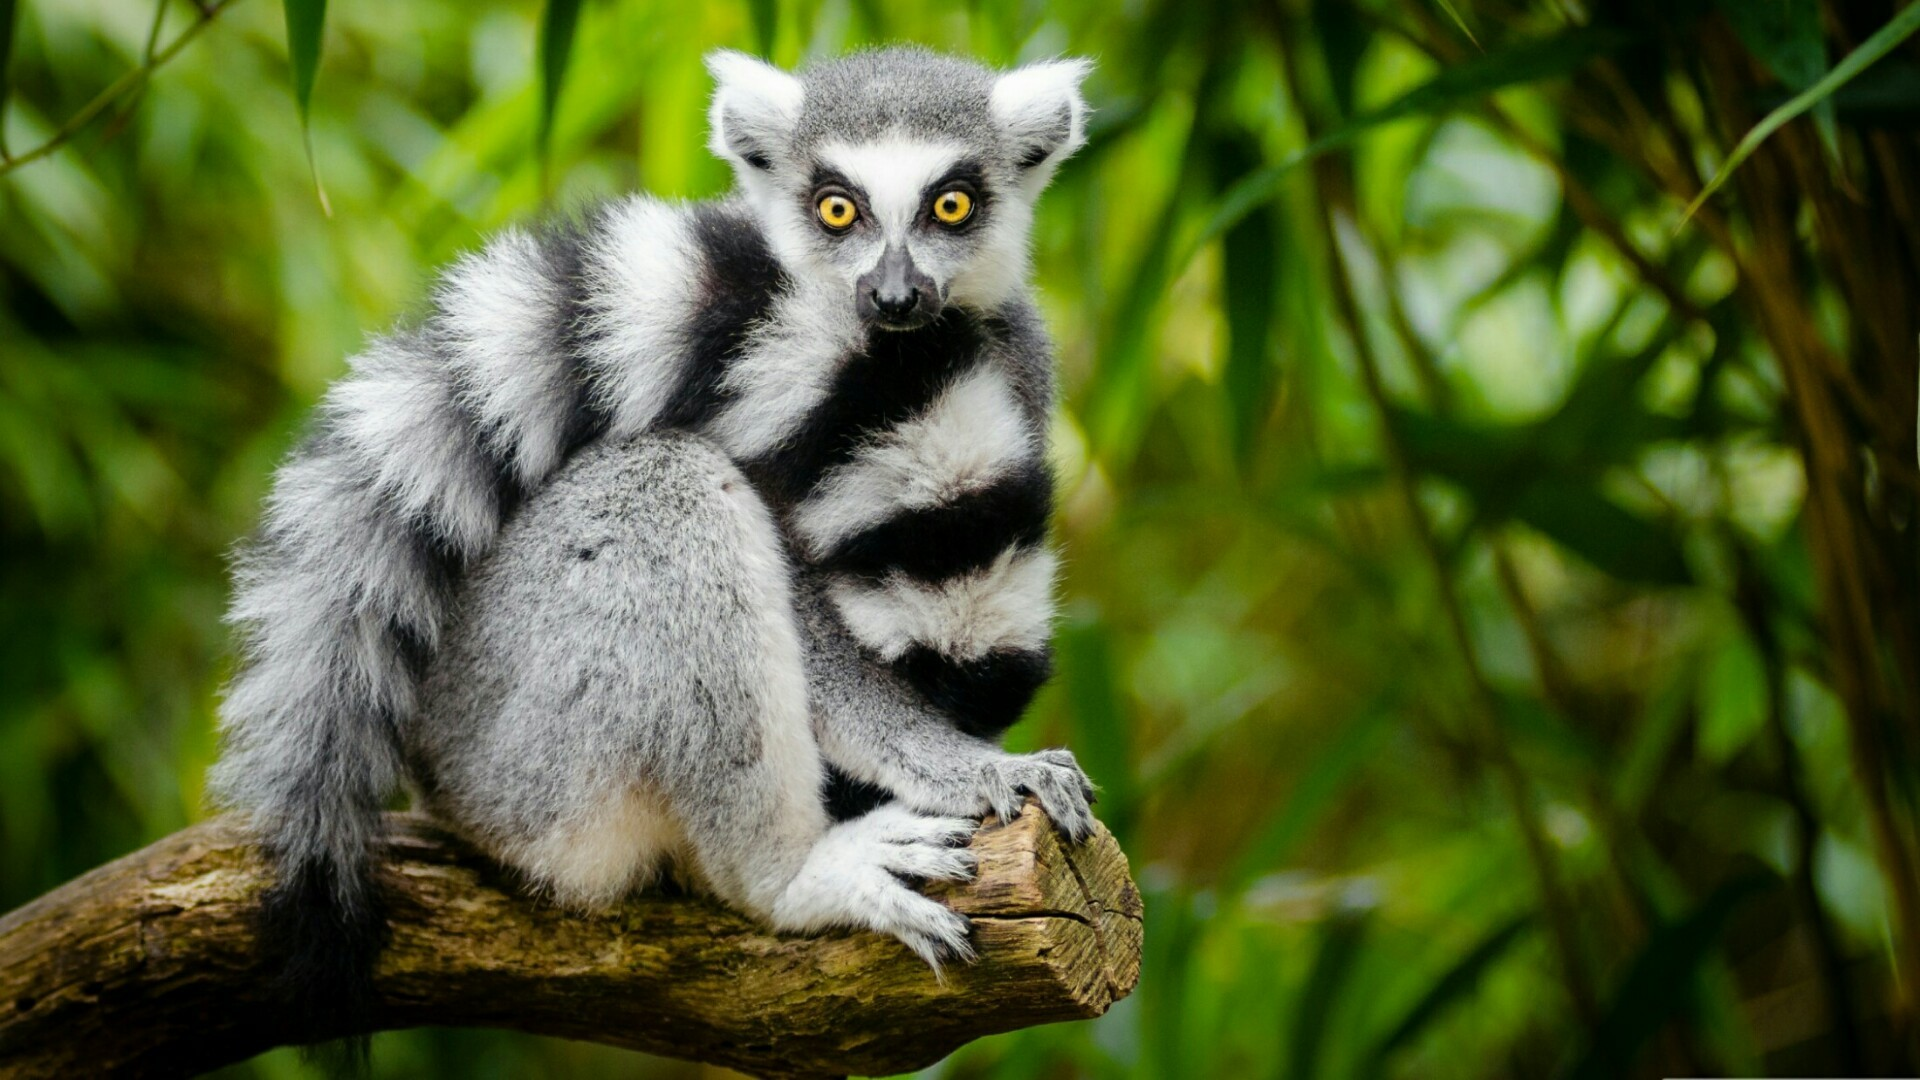 Res: 1920x1080, Cute Ring-tailed Lemur Wallpaper | Wallpaper Studio 10 | Tens of thousands  HD and UltraHD wallpapers for Android, Windows and Xbox